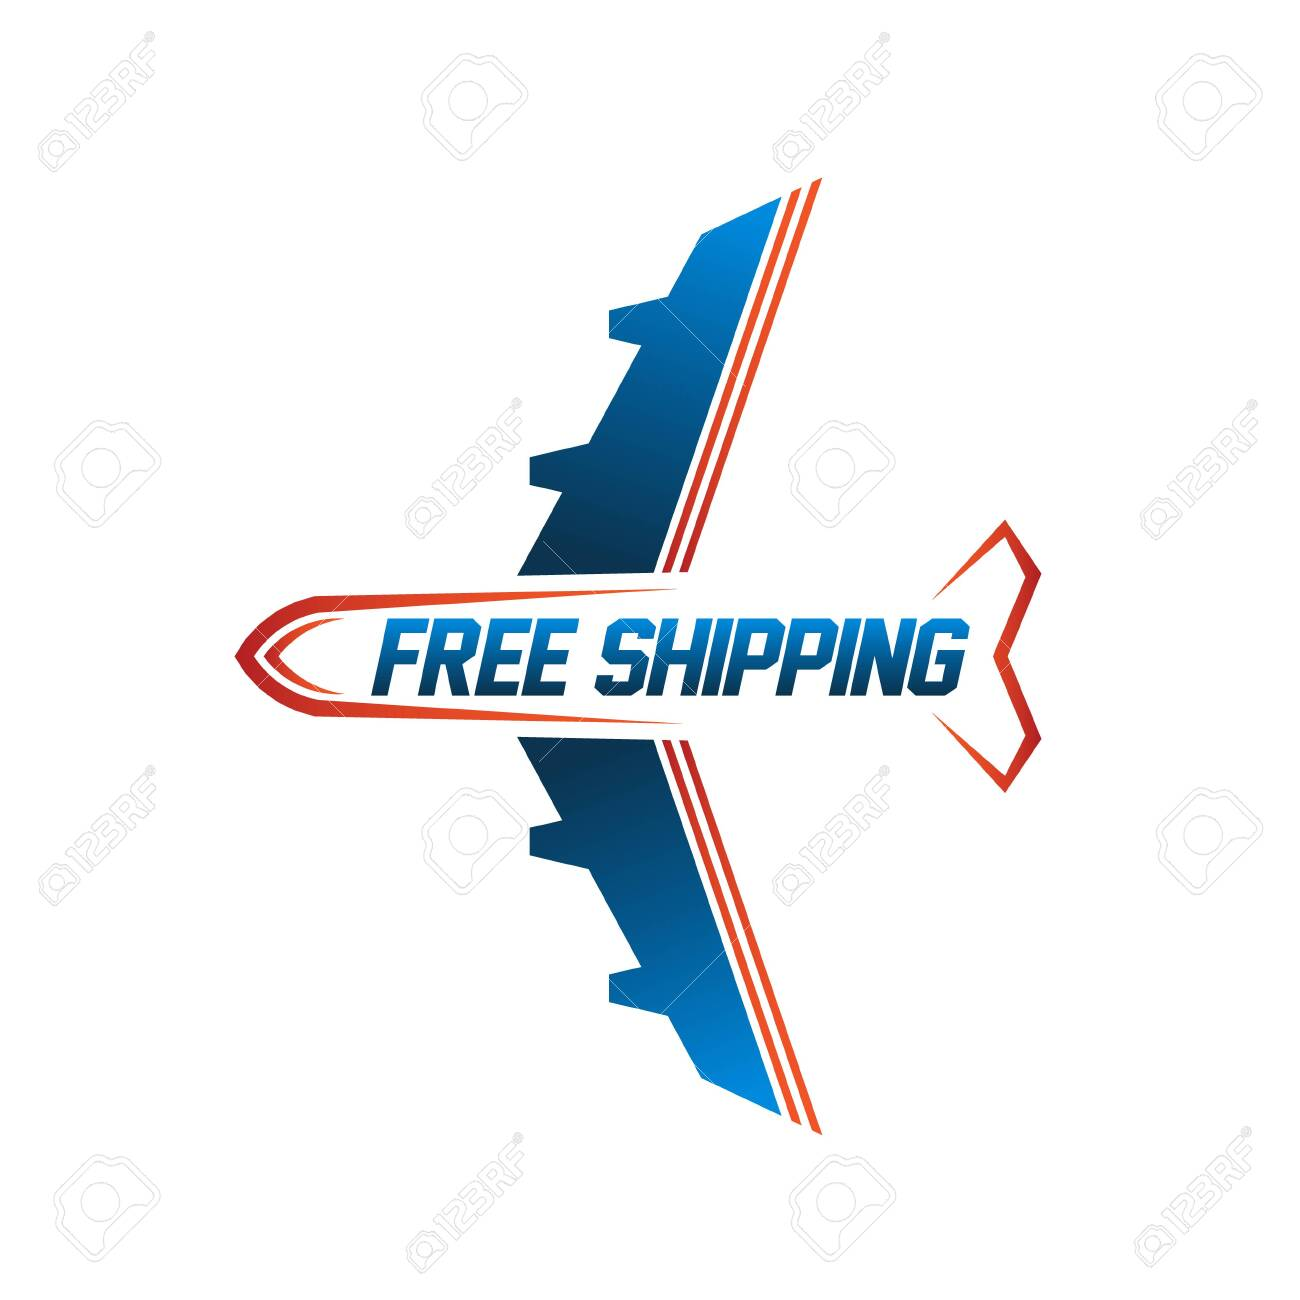 Free Shipping Air Cargo Image Royalty Free Cliparts Vectors And Stock Illustration Image 29959324